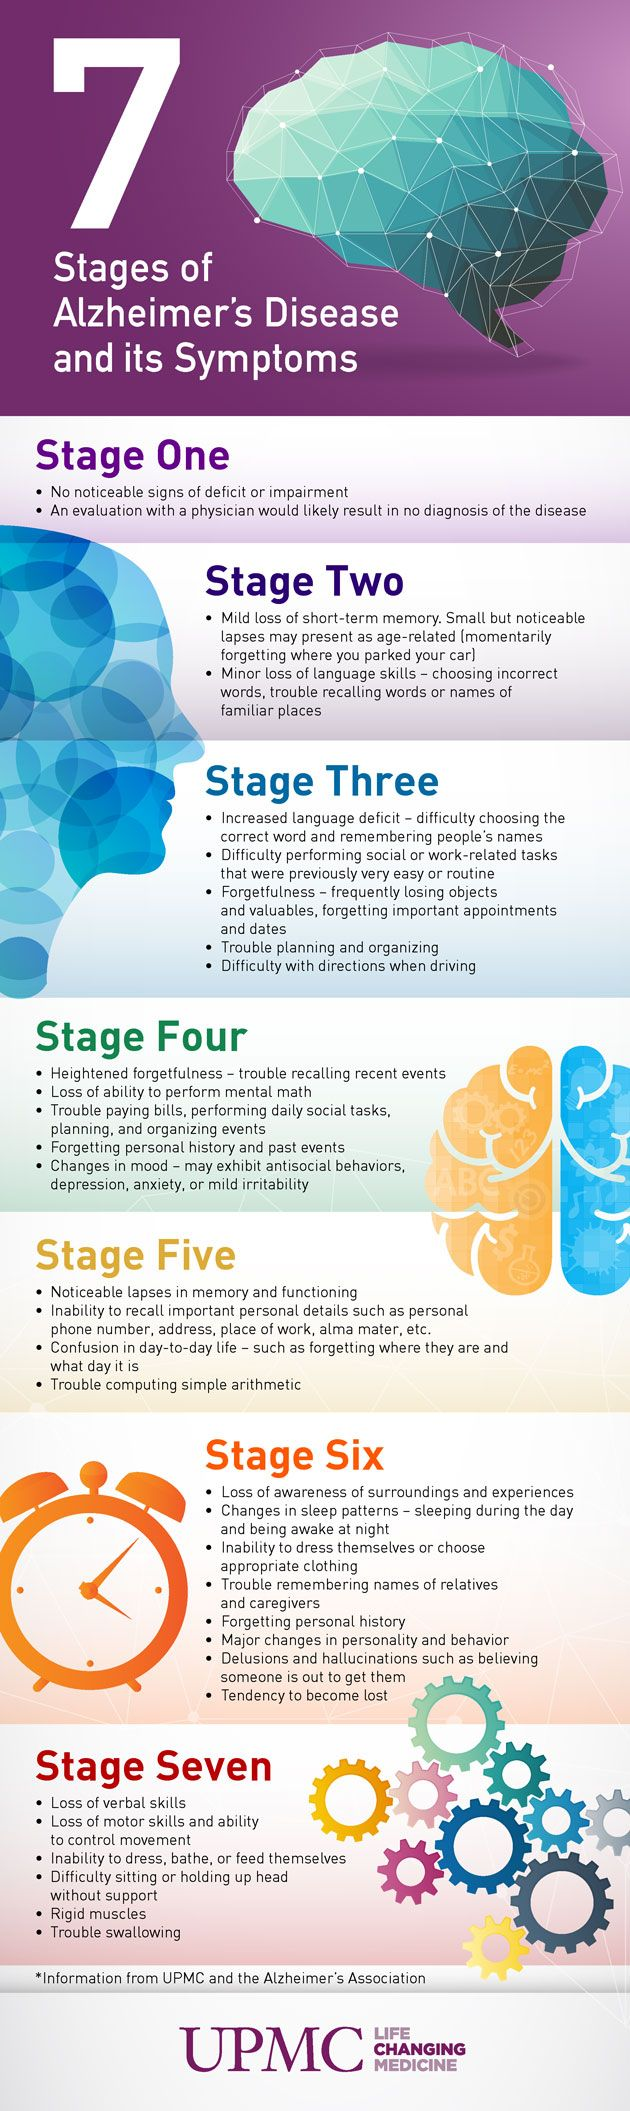 Alzheimers Disease By The Numbers Infographic Disease Infographic Alzheimers Dementia